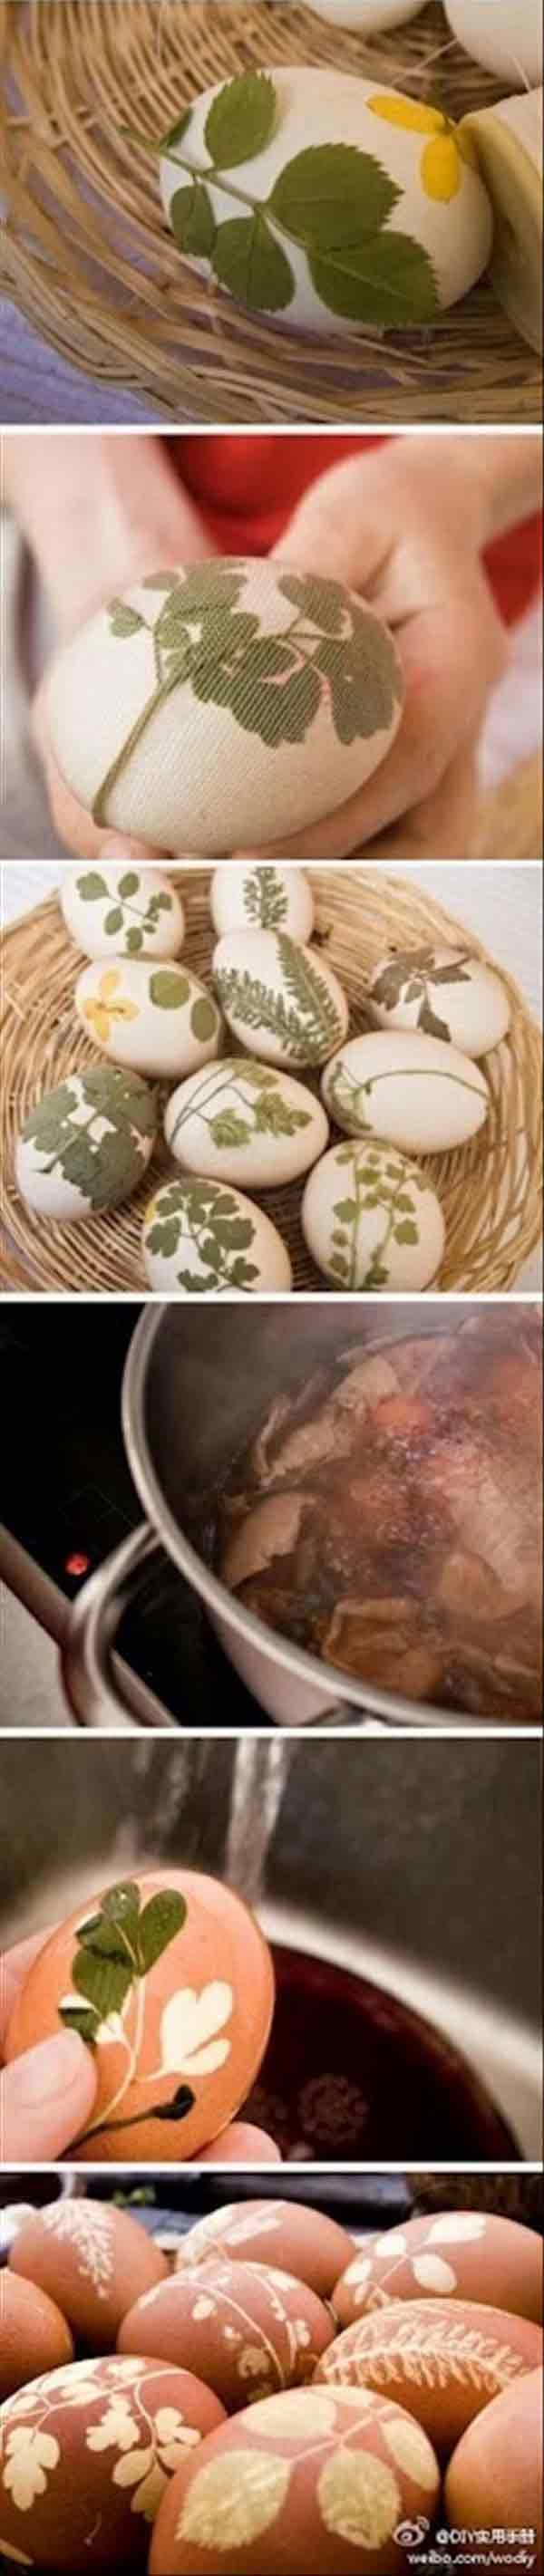 Diy-crafts-for-easter-19